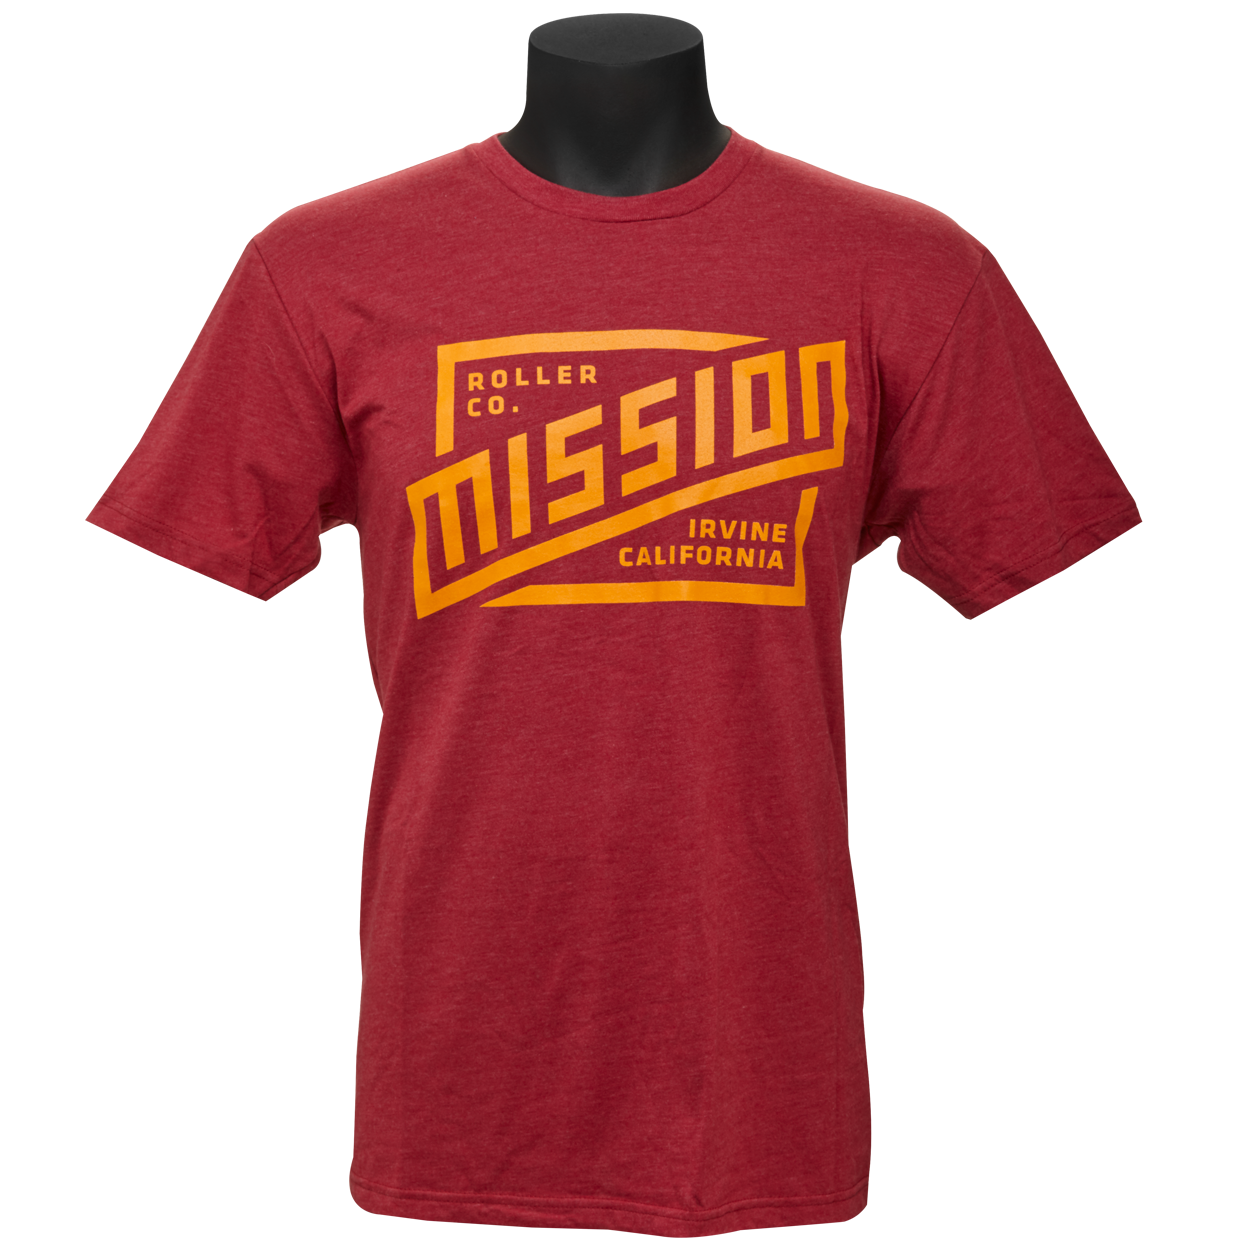 MISSION Lincoln T-Shirt Senior,,moyen